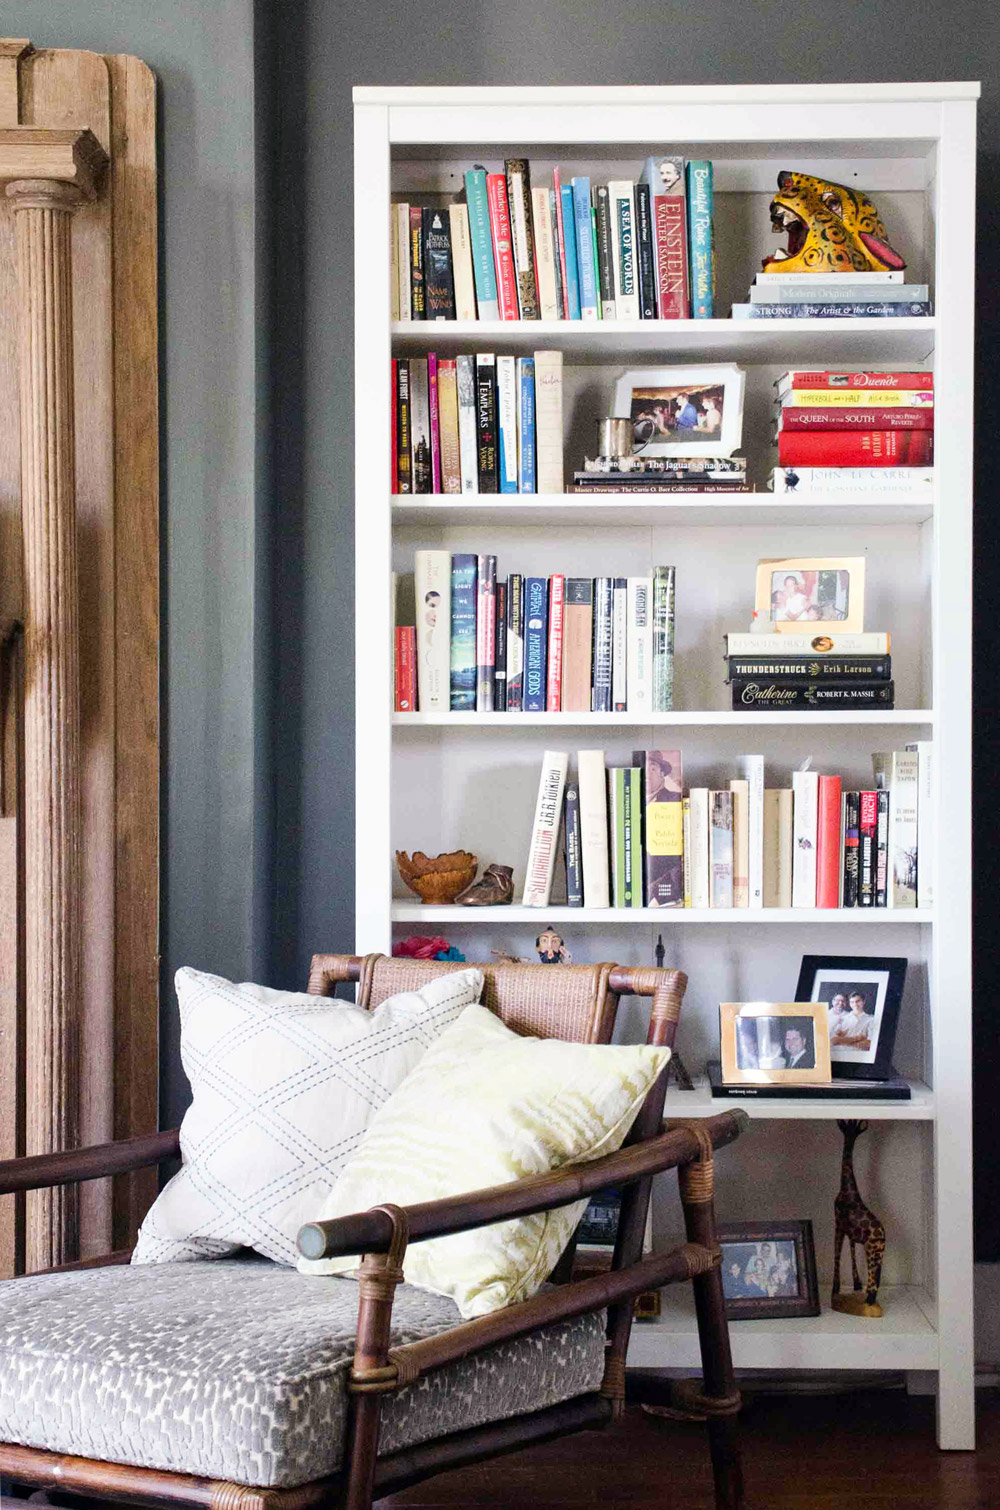 Before & After: Before & After: A Homey and Sophisticated Bungalow for Dad, on Design*SpongeA Sophisticated Bungalow for Dad, on Design*Sponge